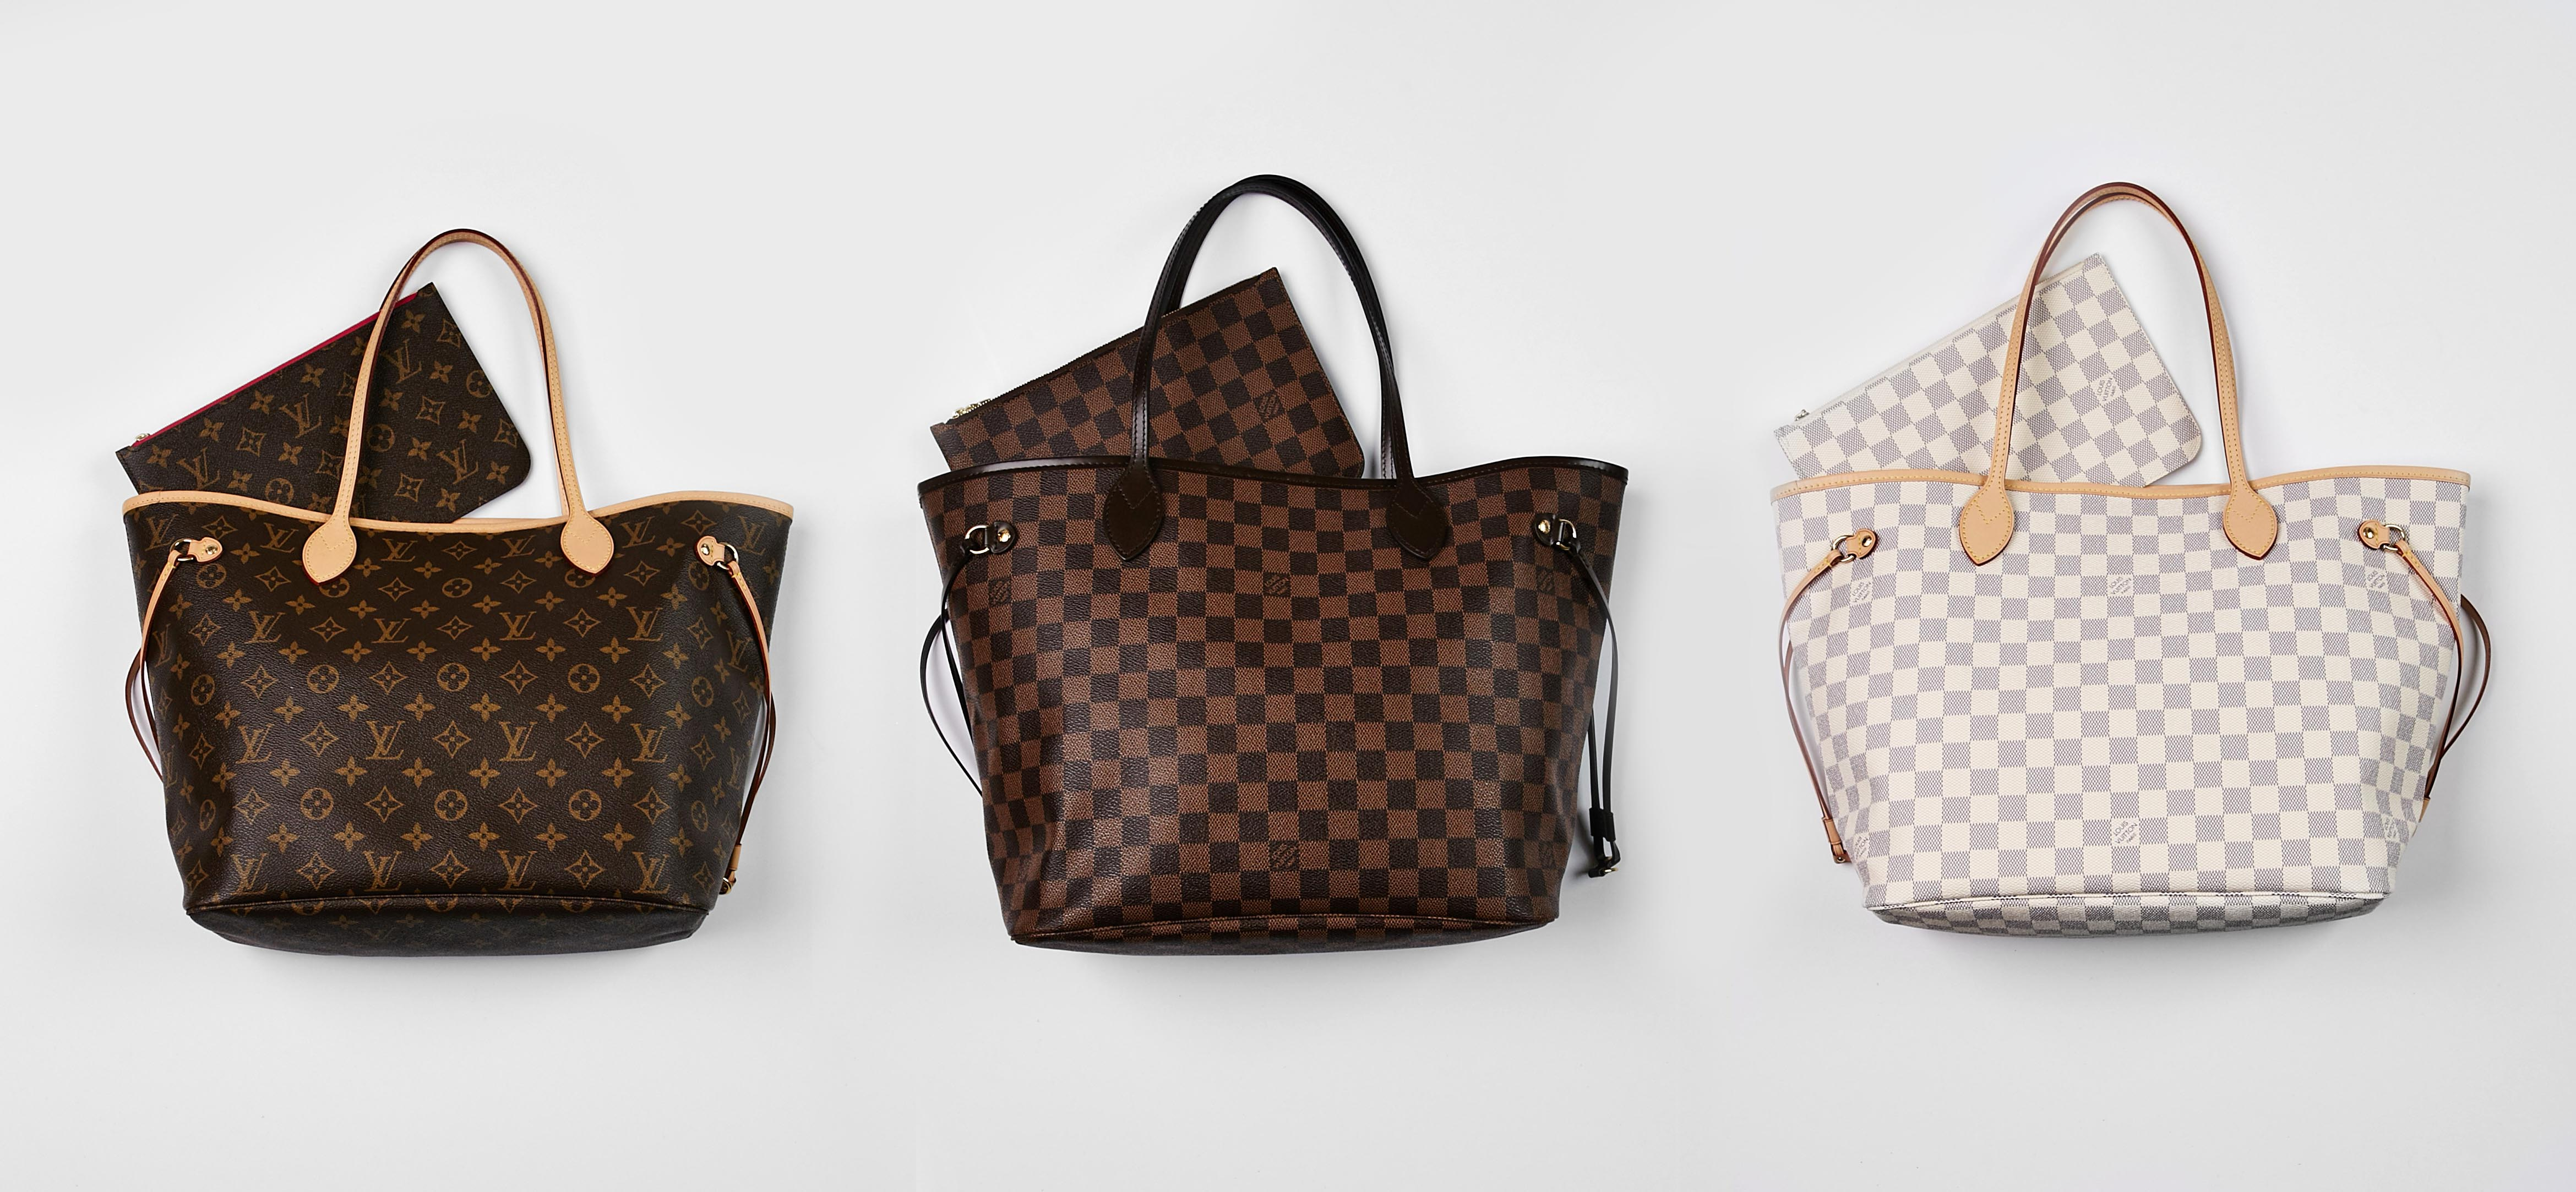 d98edf22775 Authentic Louis Vuitton Monogram, Damier Ebene, and Damier Azur Neverfull  Tote Bags   YoogisCloset